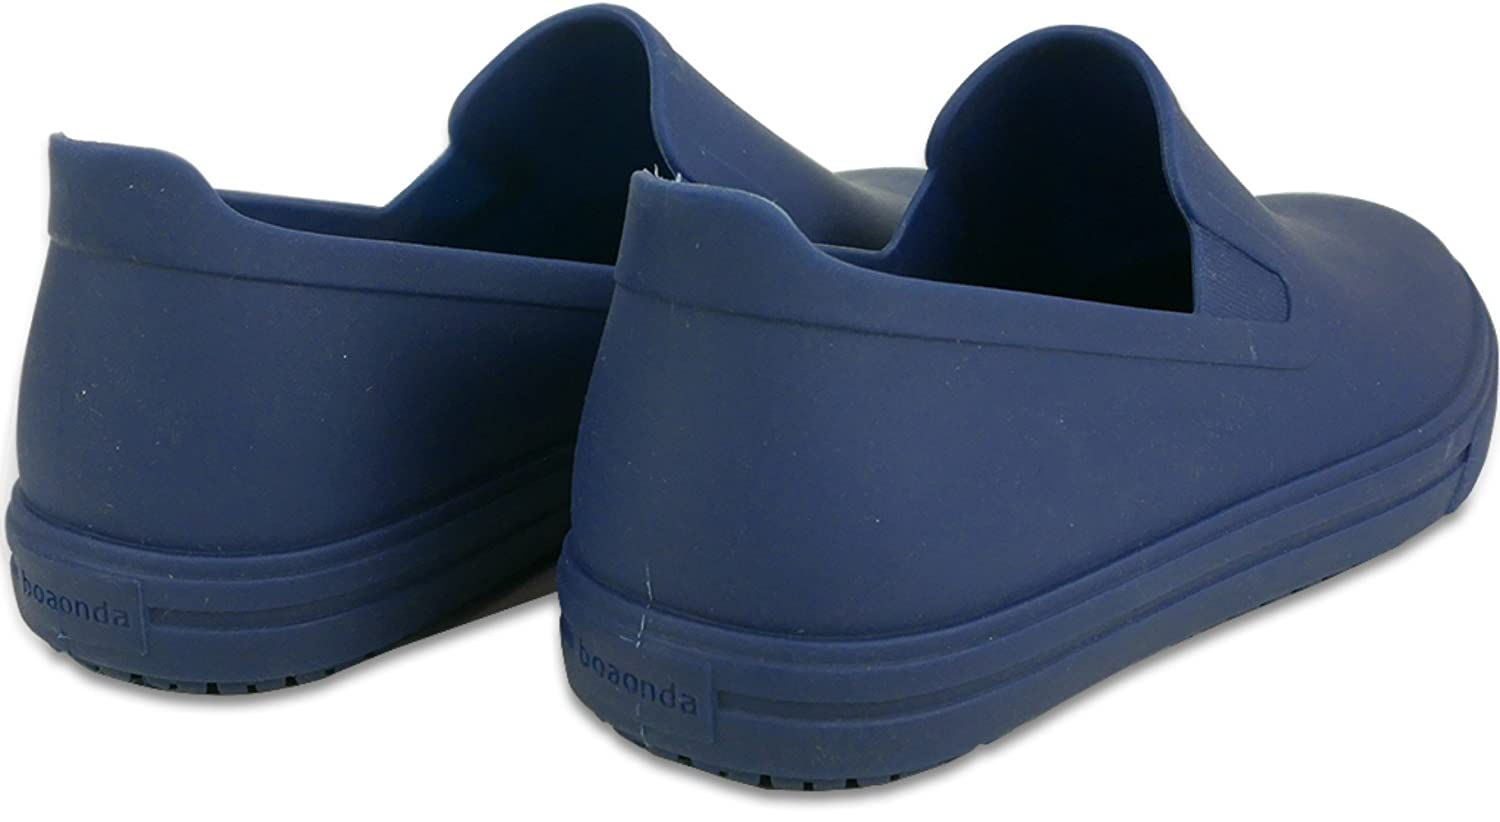 Slip On Thermoplastic Shoes with Extra Comfort Rubber Loafers for Men